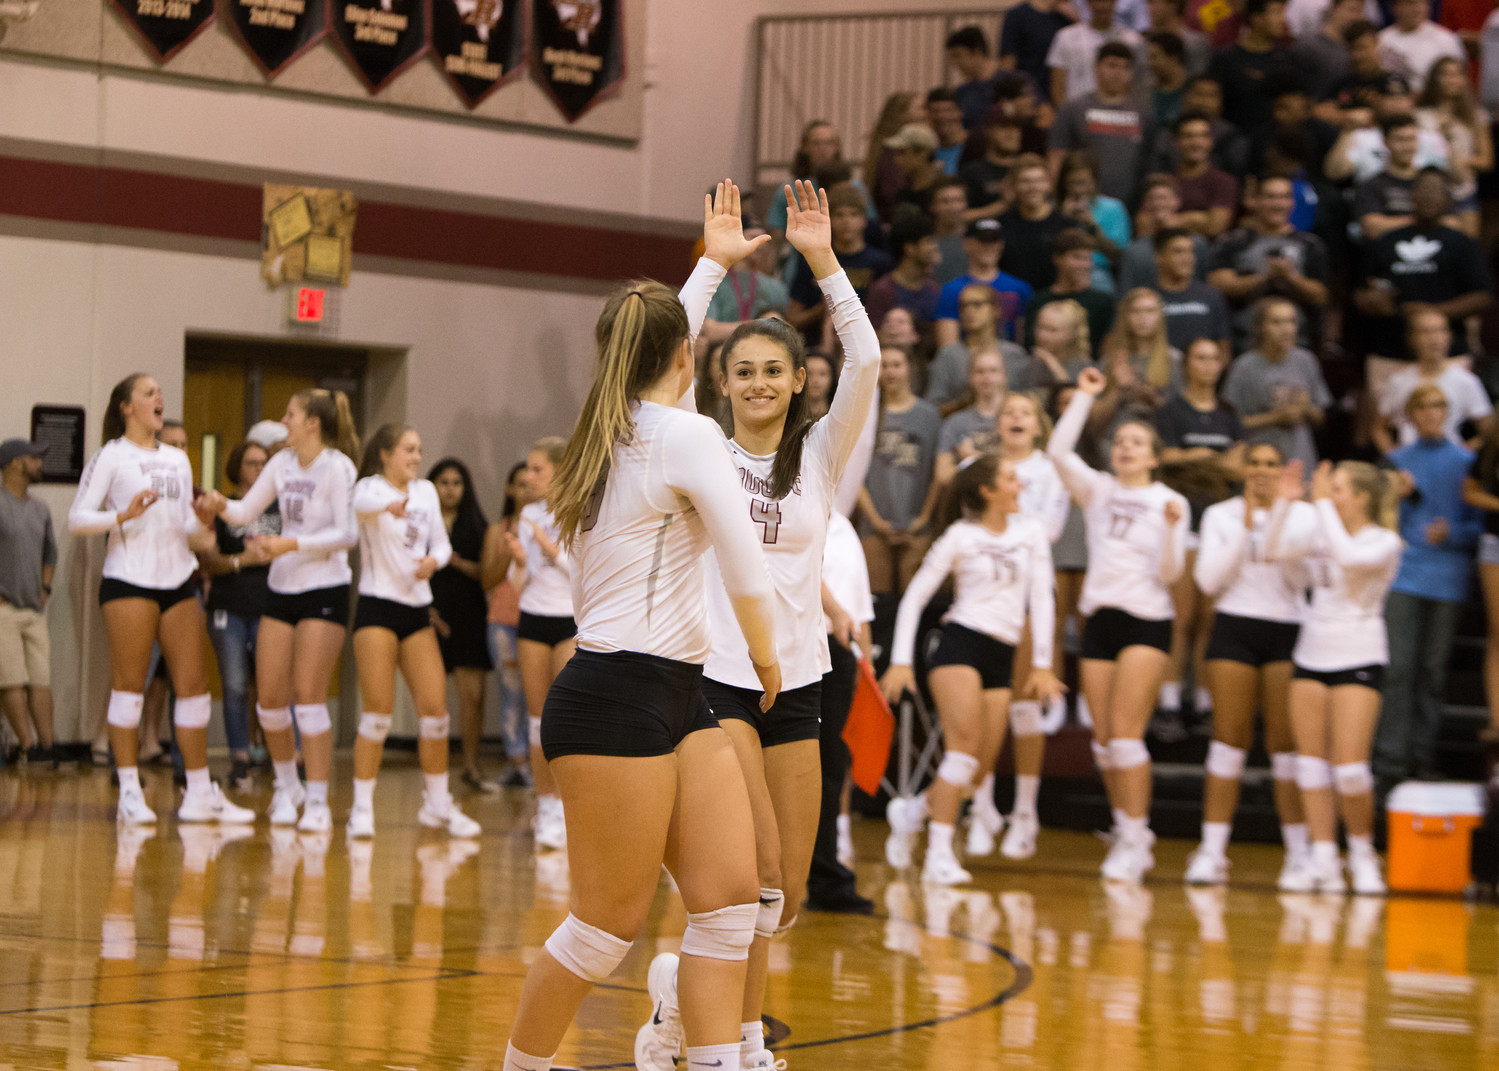 Rouse junior Grayson Schirpik finished last season fourth in kills (284) and third in digs (523) and is one of just three returning players on the varsity squad this season.